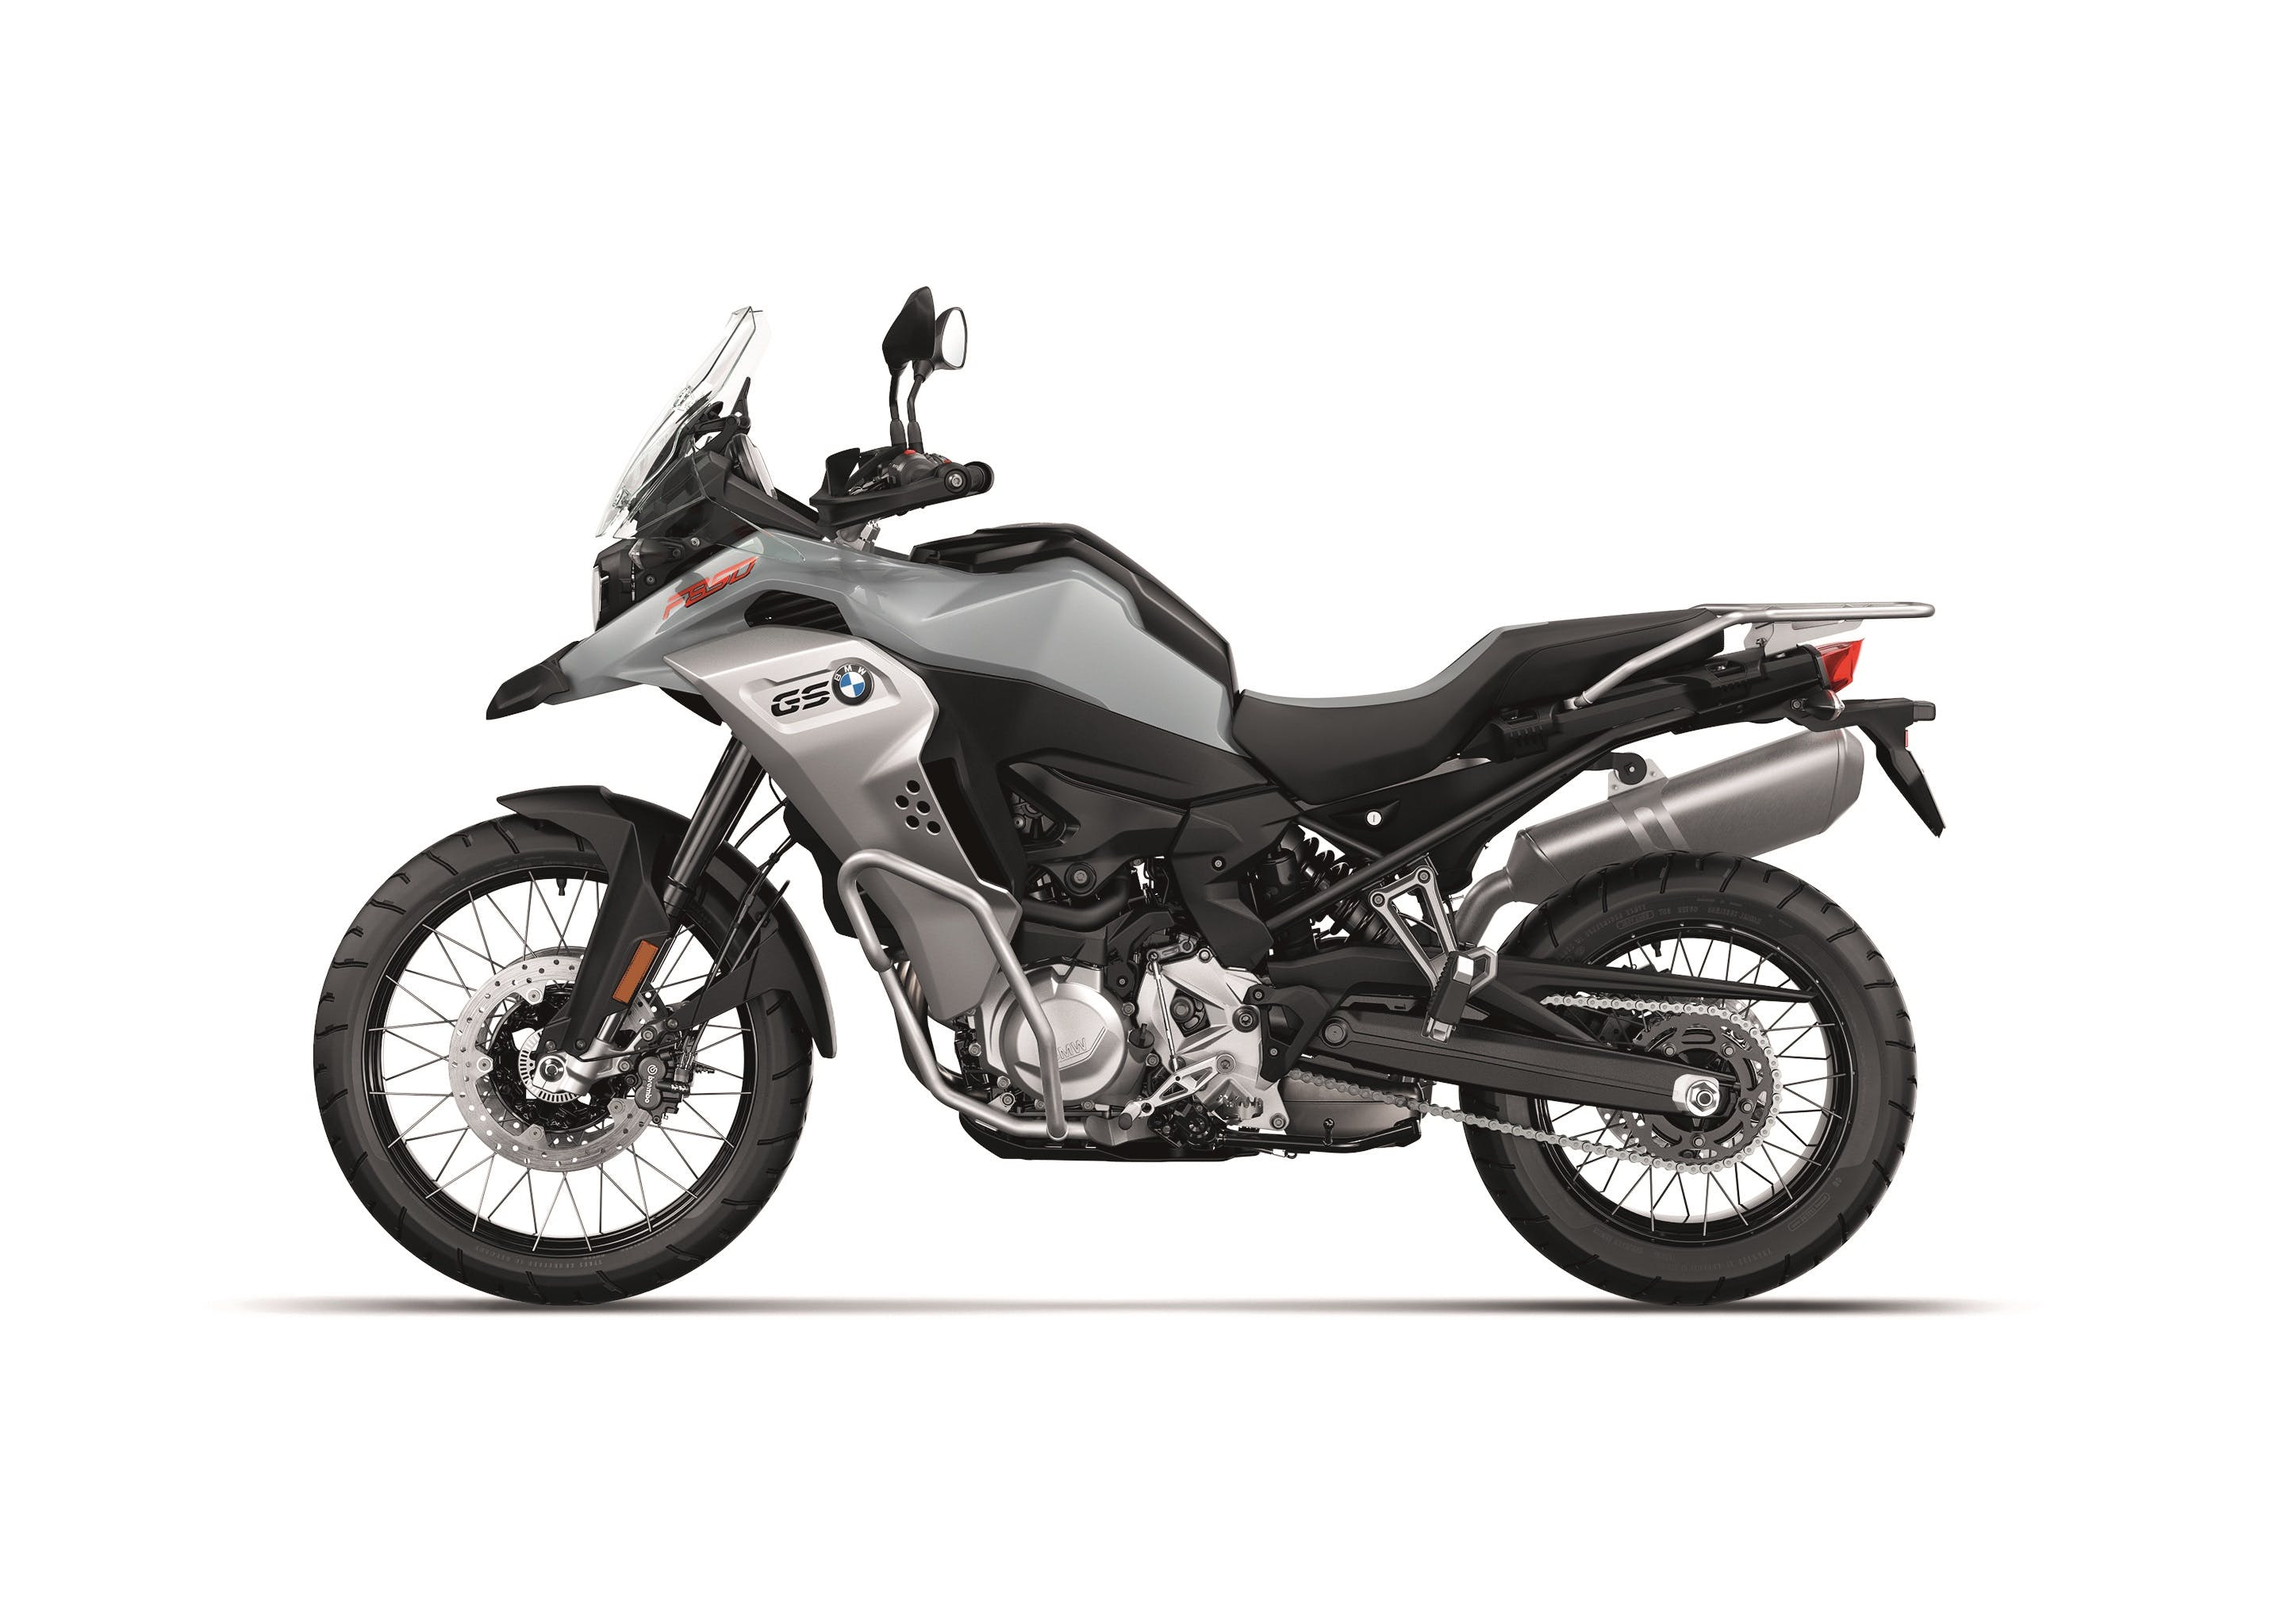 BMW F 850 GS ADVENTURE in ice grey colour